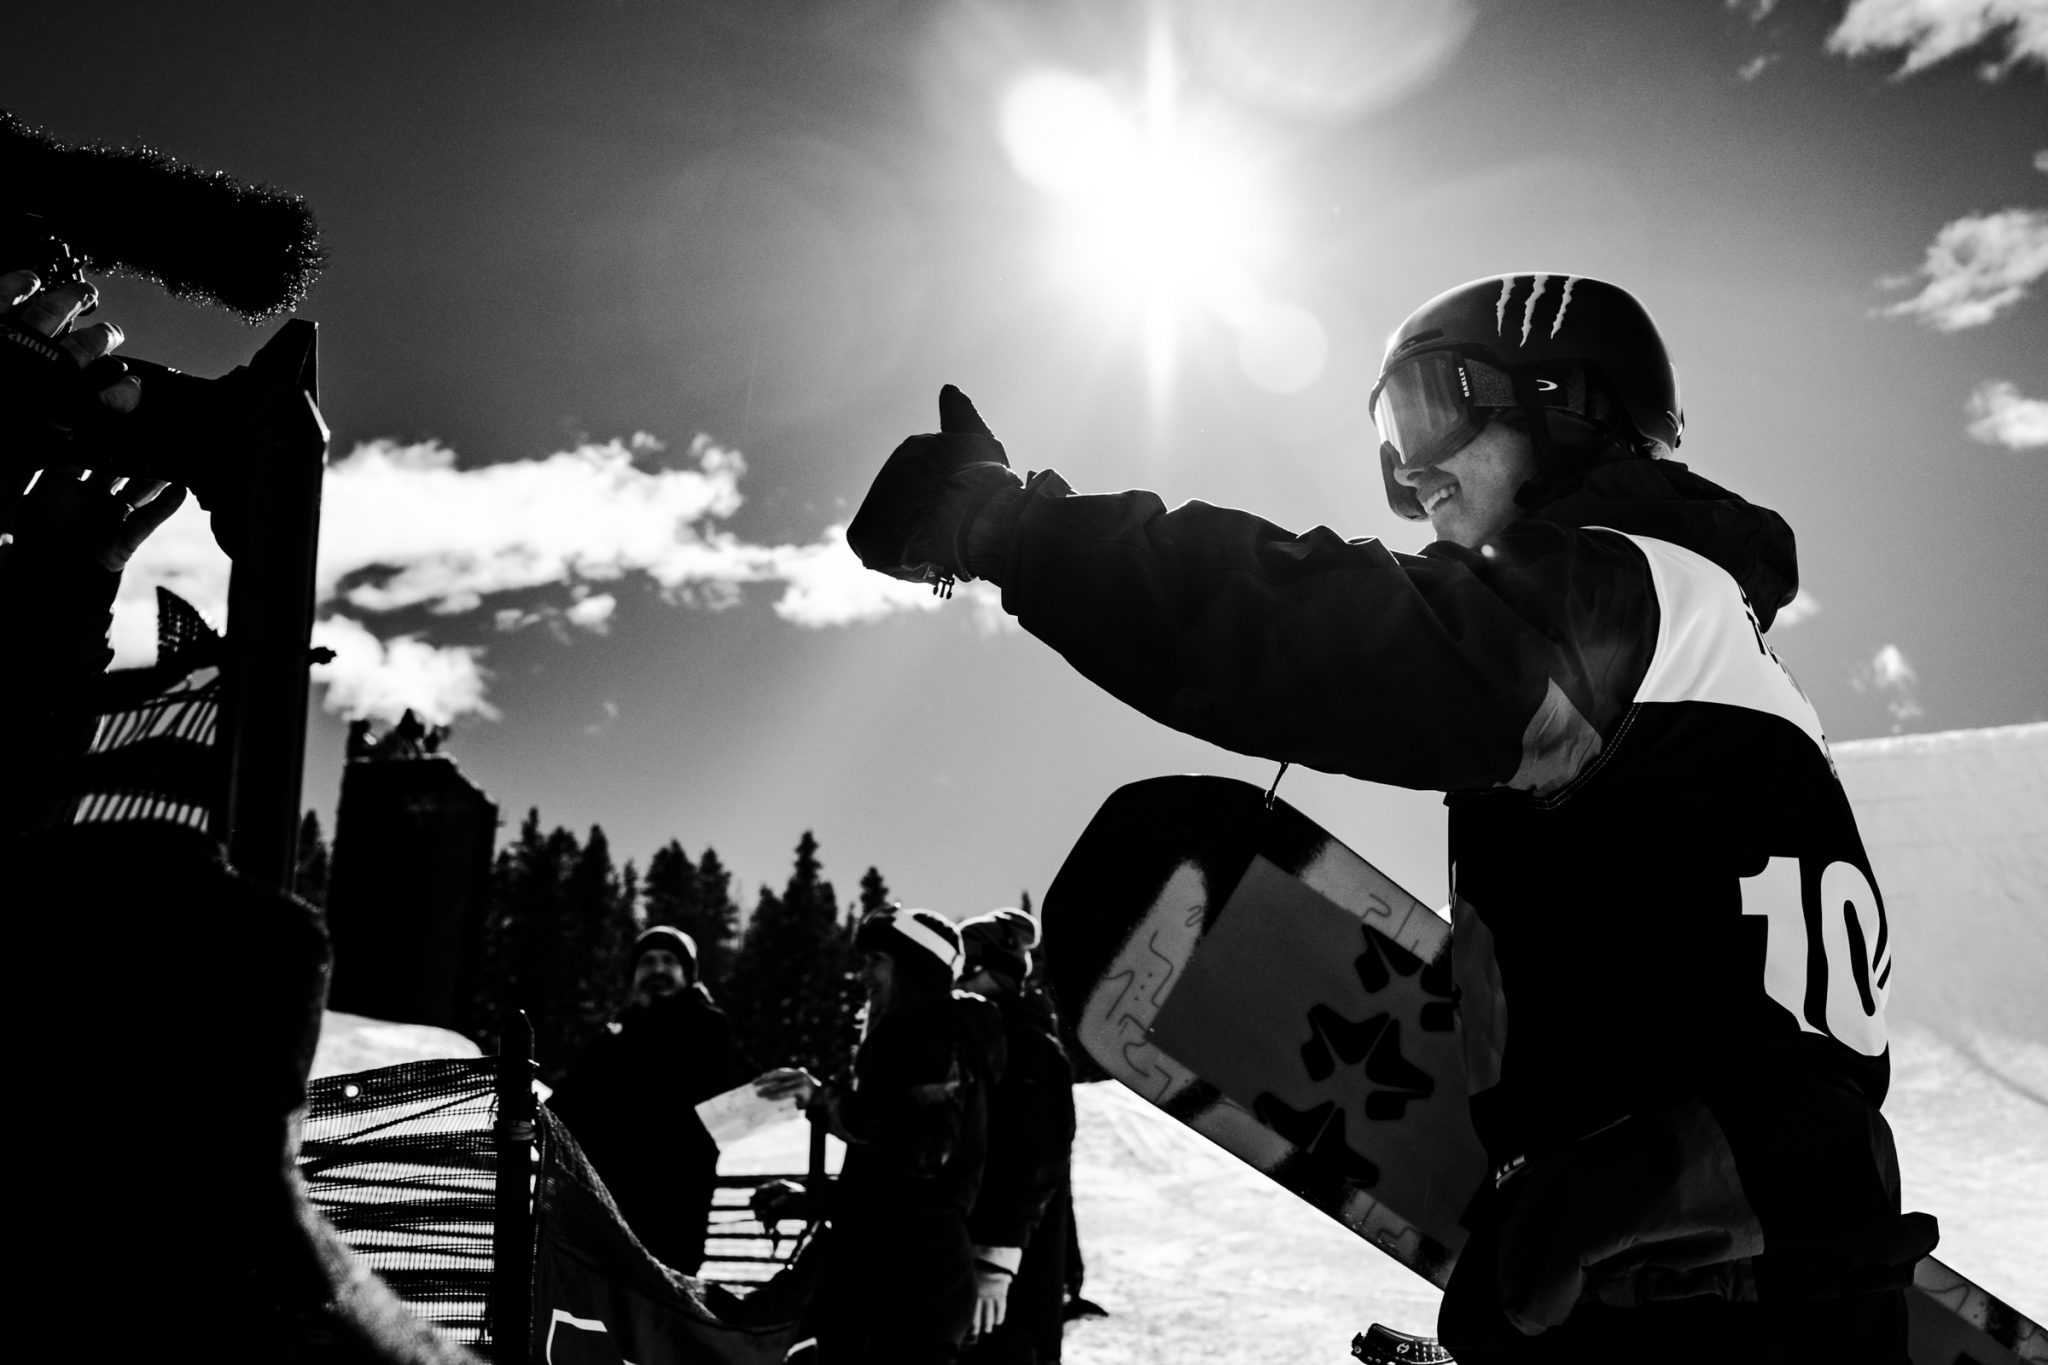 Competitive snowboarder giving thumbs up